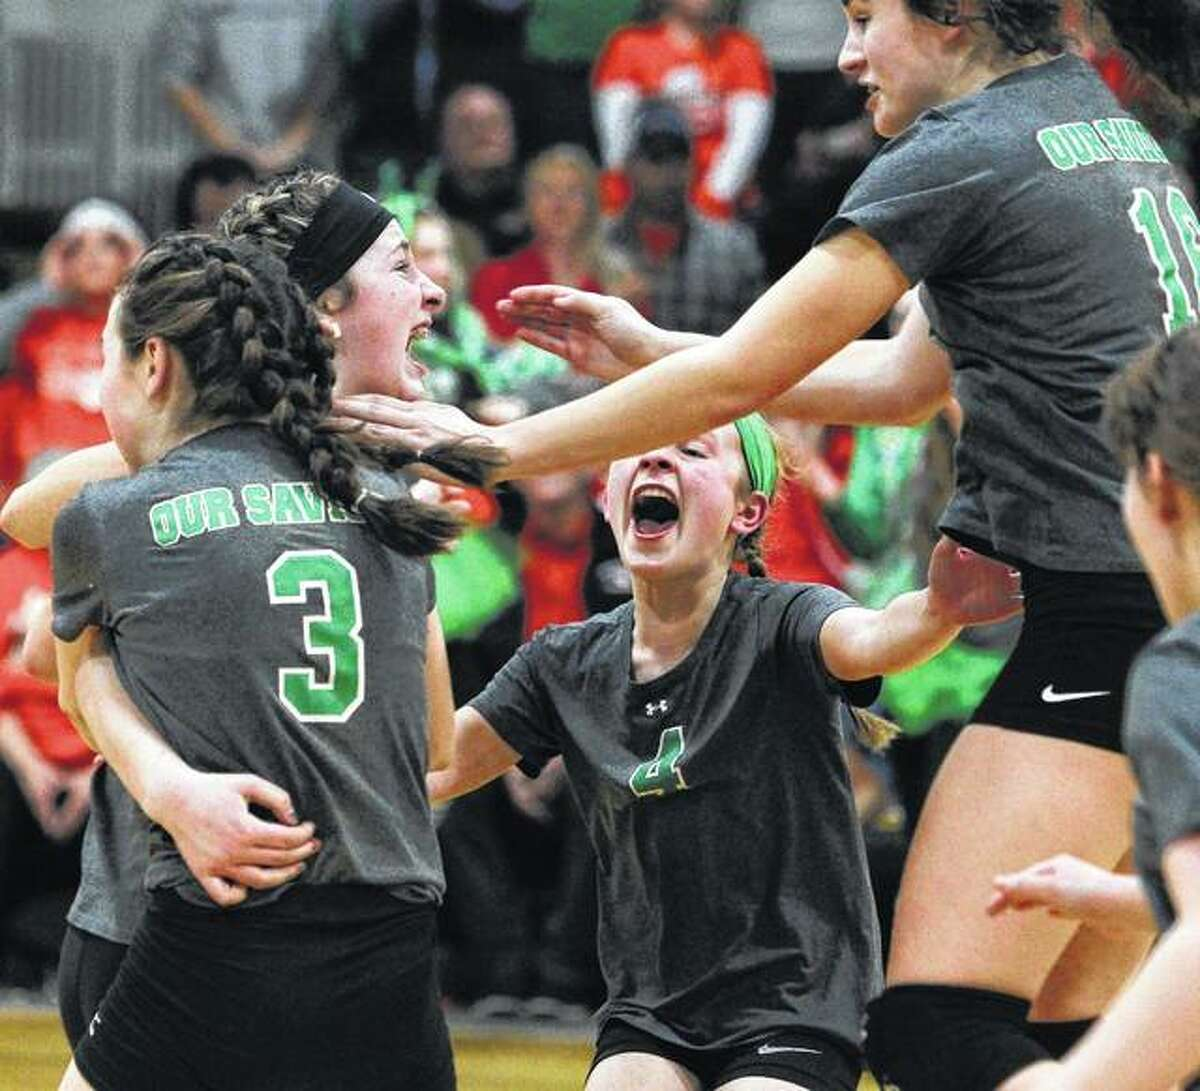 Members of the Our Saviour eighth-grade volleyball team celebrate their win over Waverly in the Our Saviour Regional championship game. After losing the first set, the Shamrocks rallied for a 21-25, 25-19, 25-23 victory.